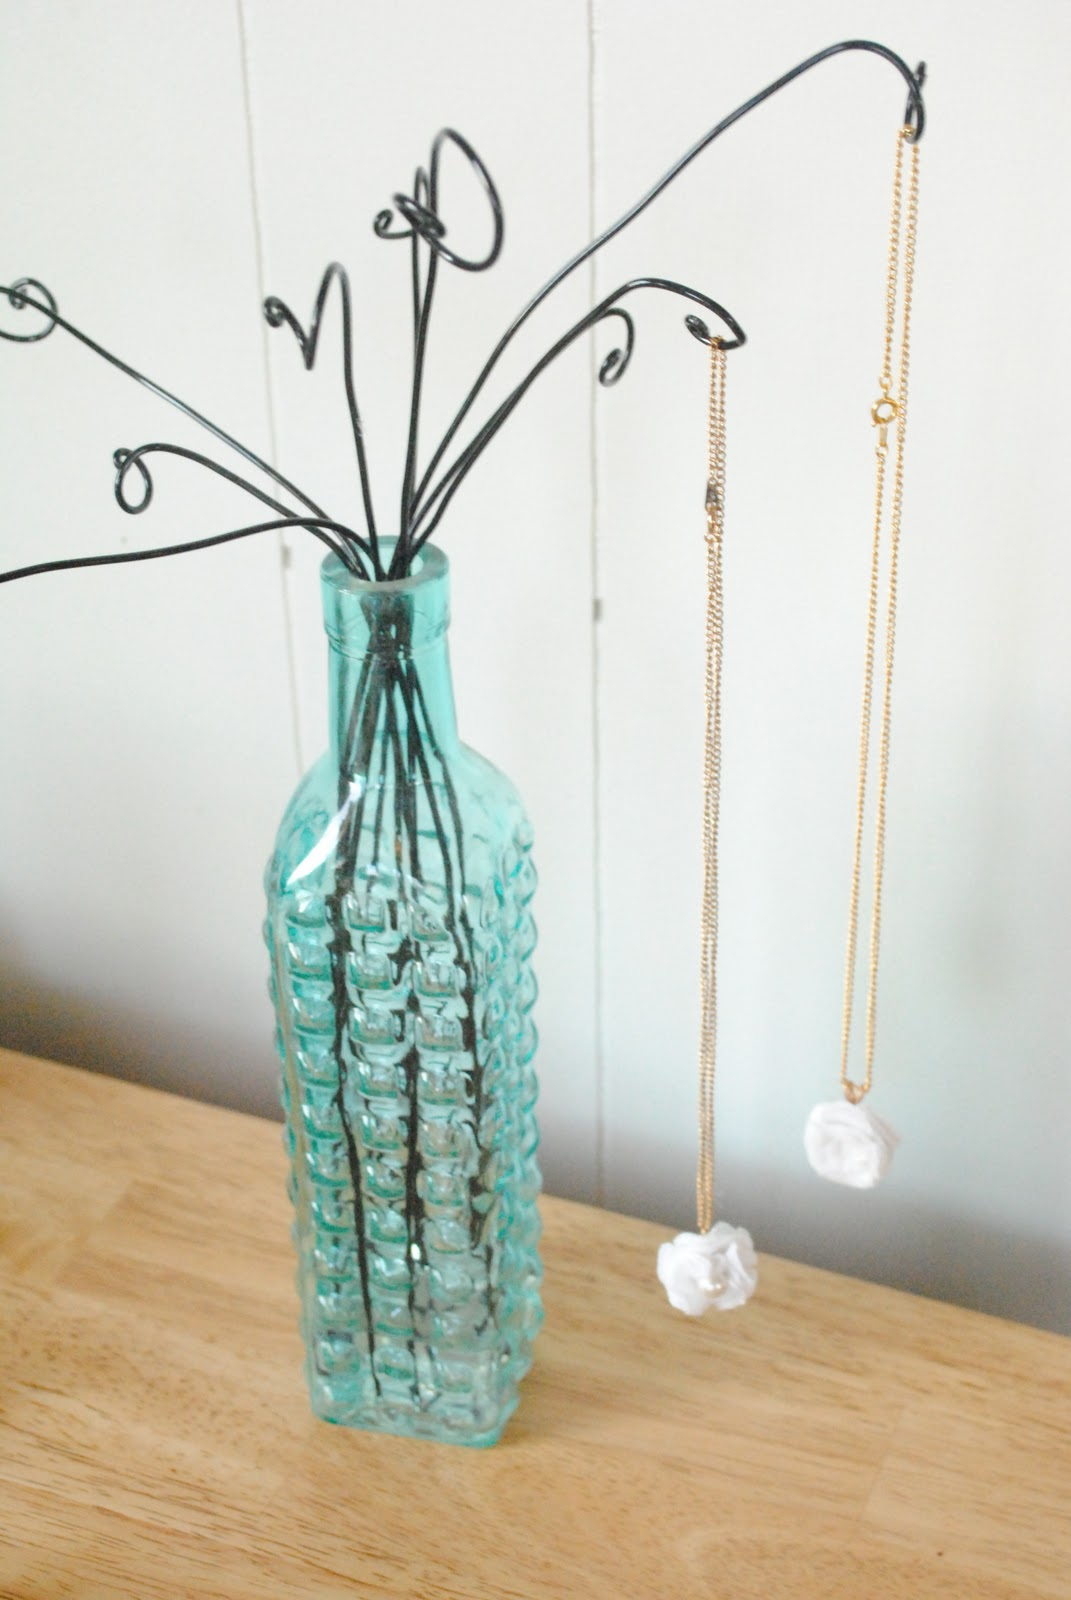 Wire and Vase Necklace or Bracelet Display Tutorial - The Beading ...